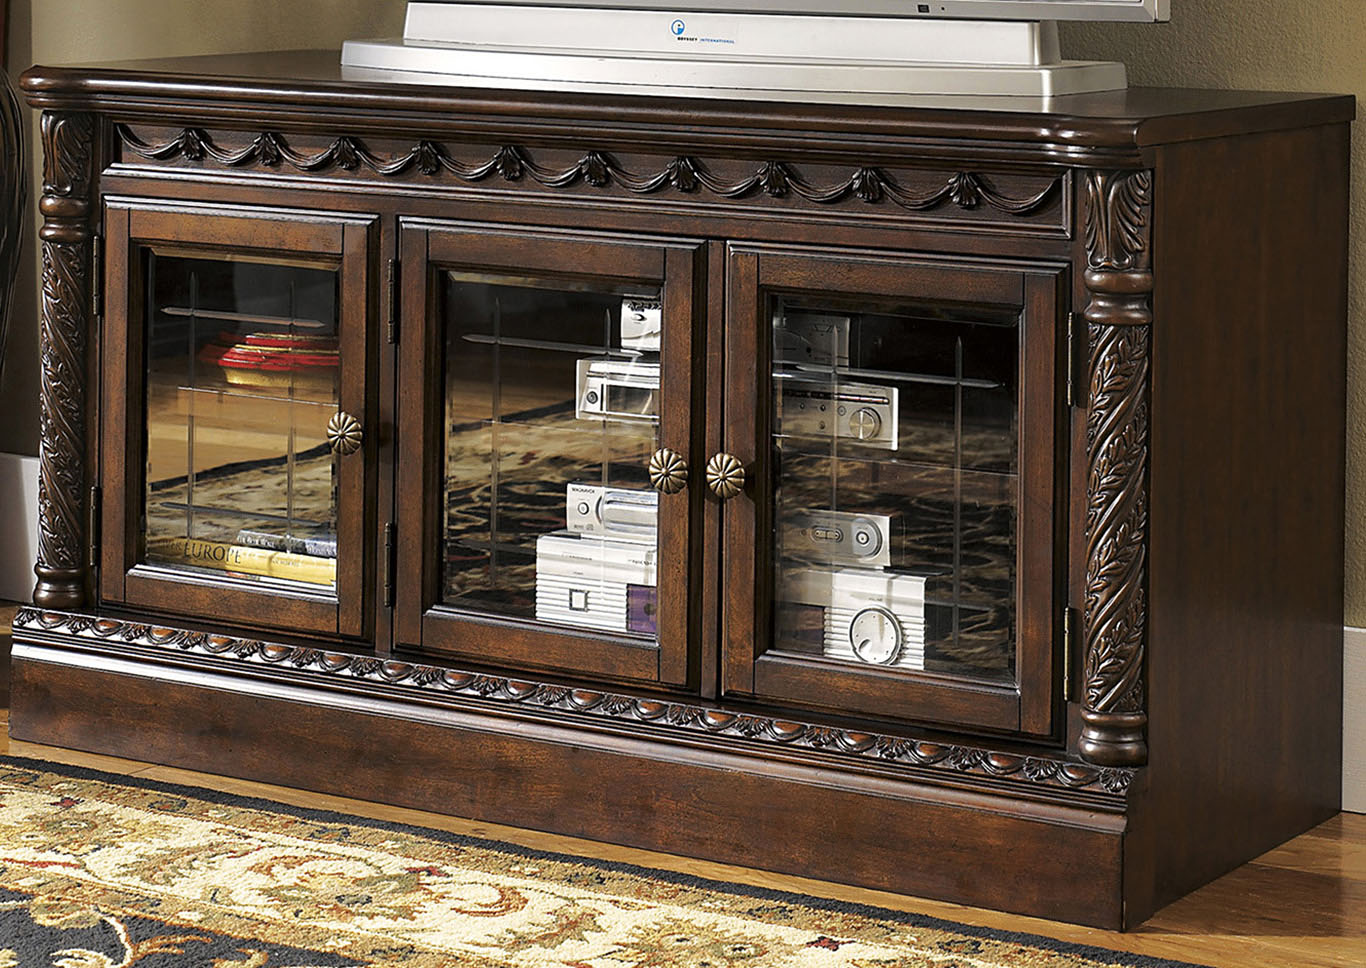 North Shore Medium TV Stand Millennium. Lifestyle Furniture Home Store North Shore Medium TV Stand